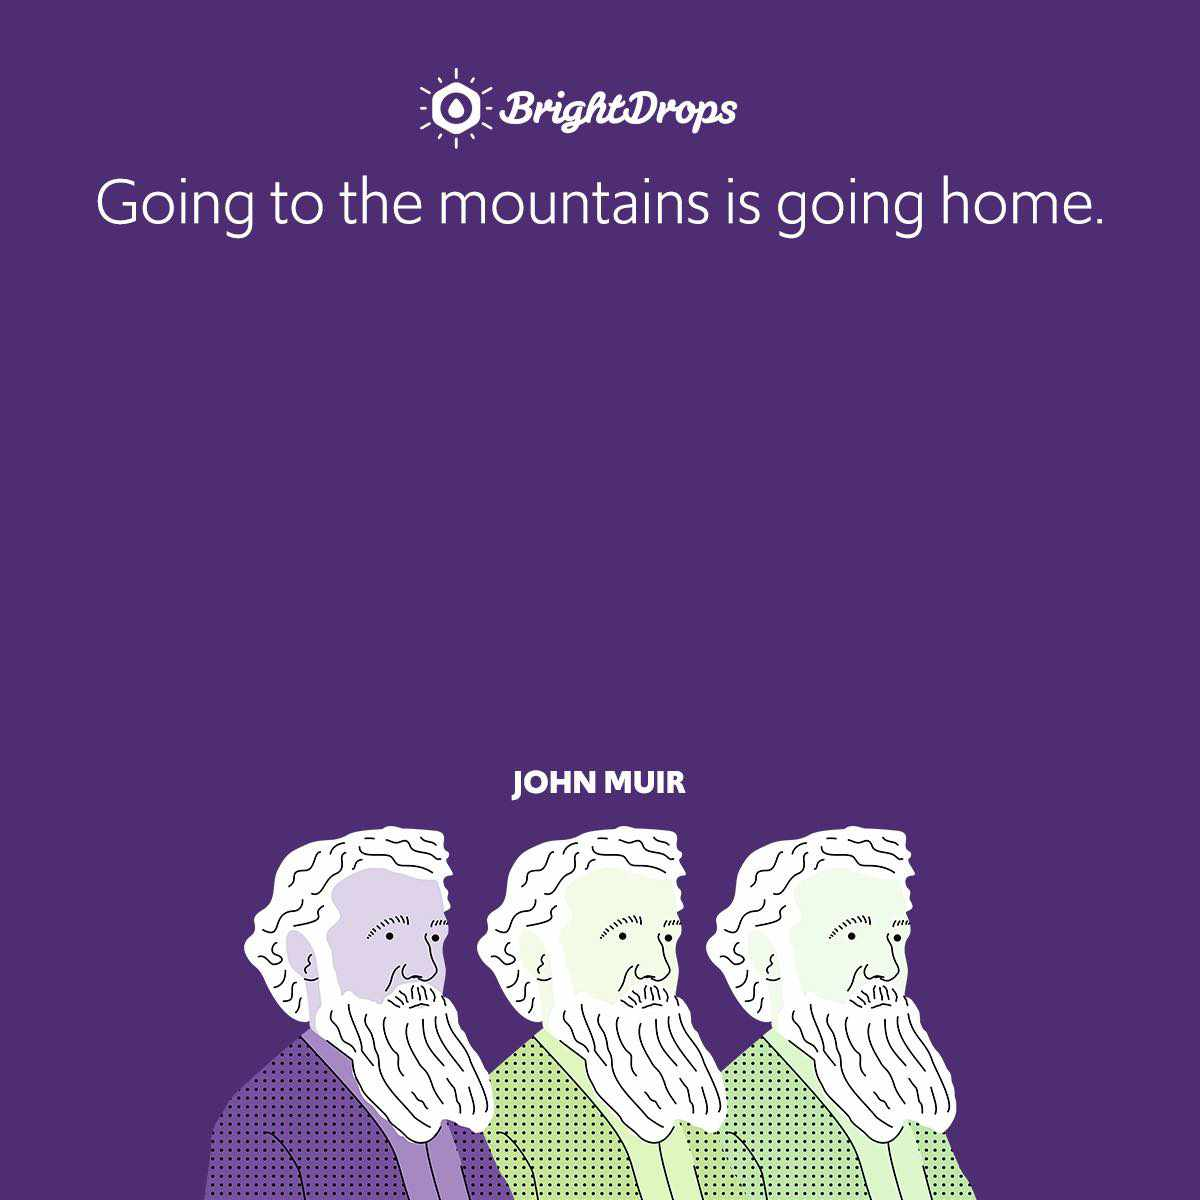 Going to the mountains is going home.